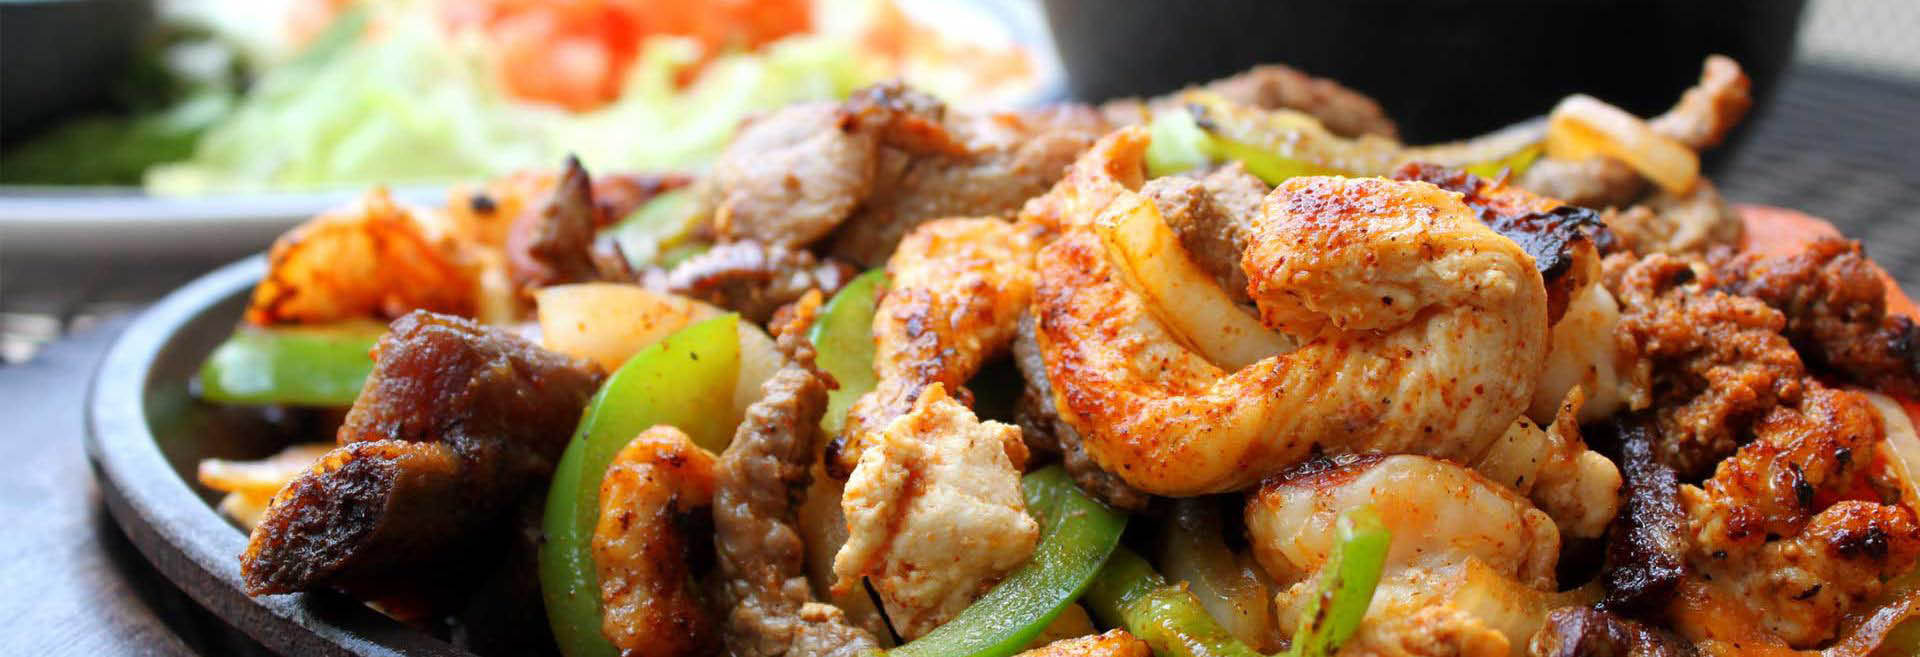 Jamaican Food Coupons - Cool Runnings Coupons